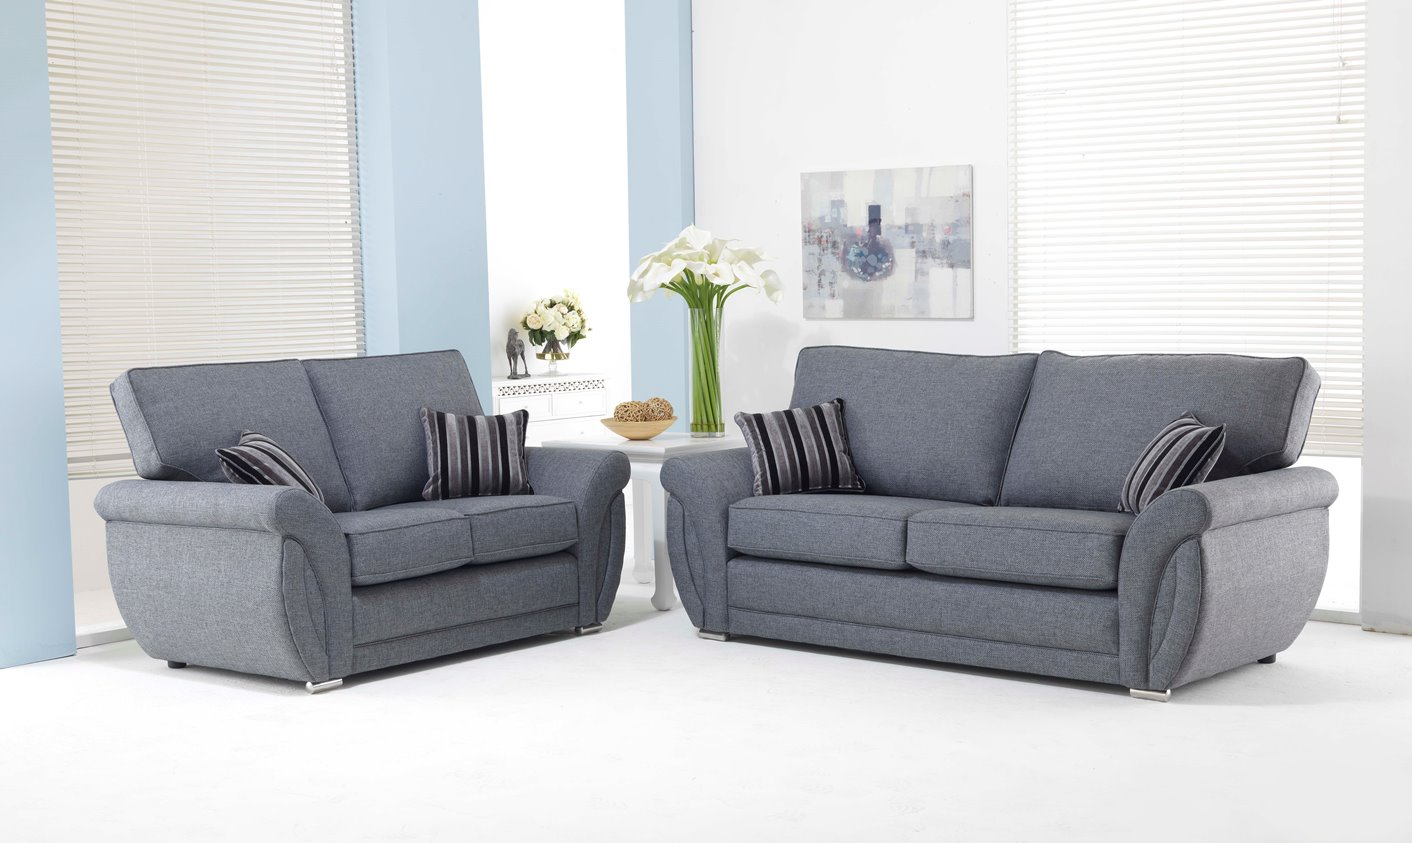 made to measure sofa beds uk 50s style sofas p anda furnishings  where quality furniture costs less